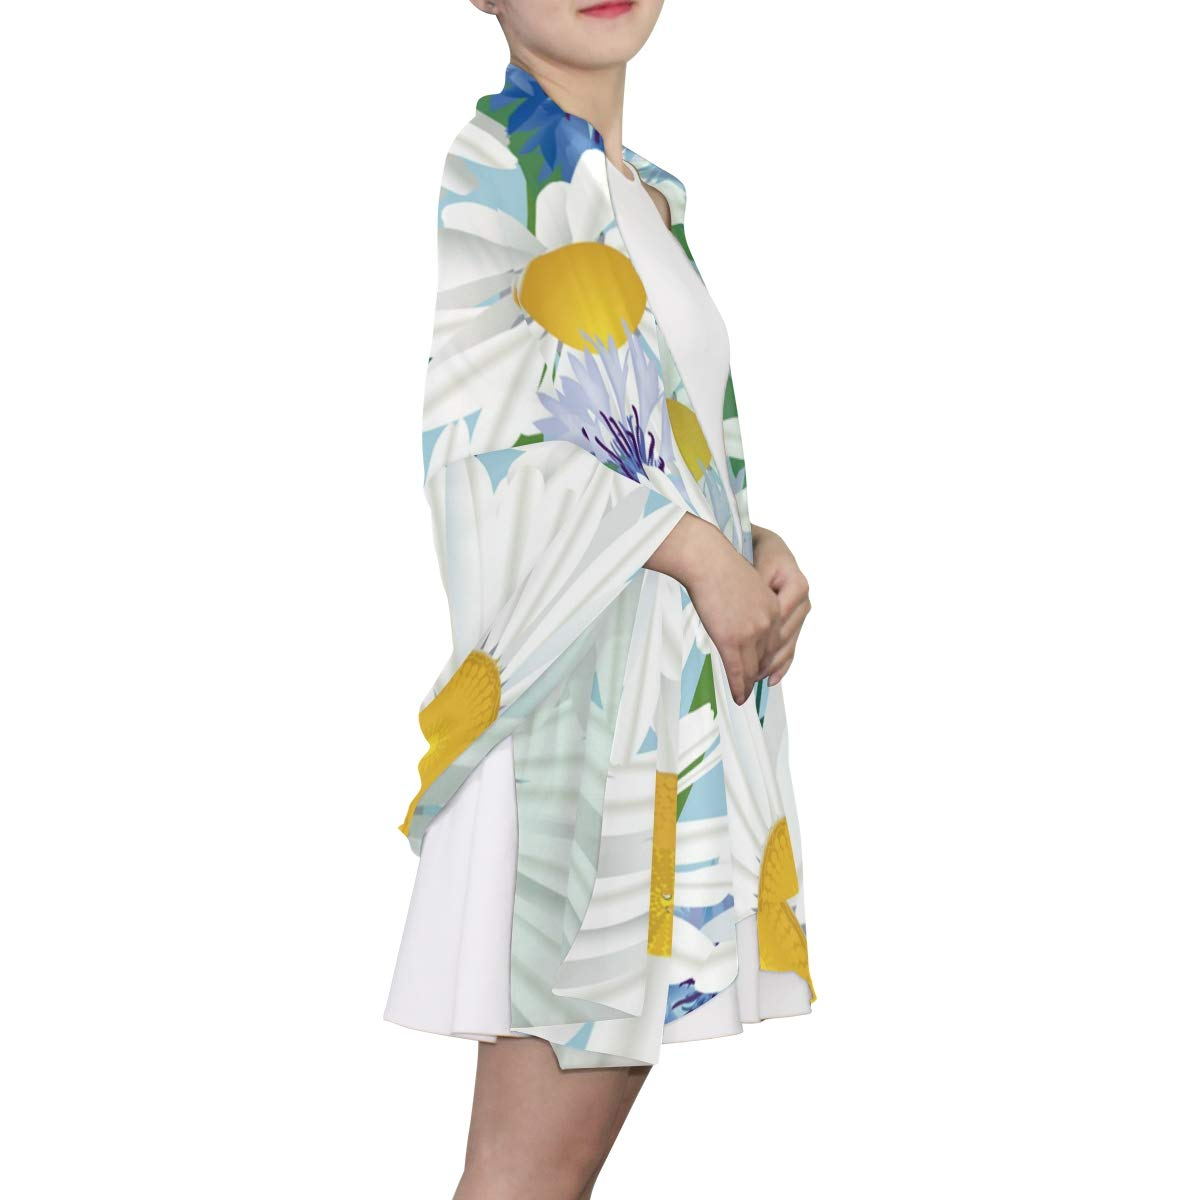 Long Scarf EELa Scrves Women Polyester Lightweight Soft Printed Meadow Flower Fashion Wrap Shawl Spring Winter 70x35 inches